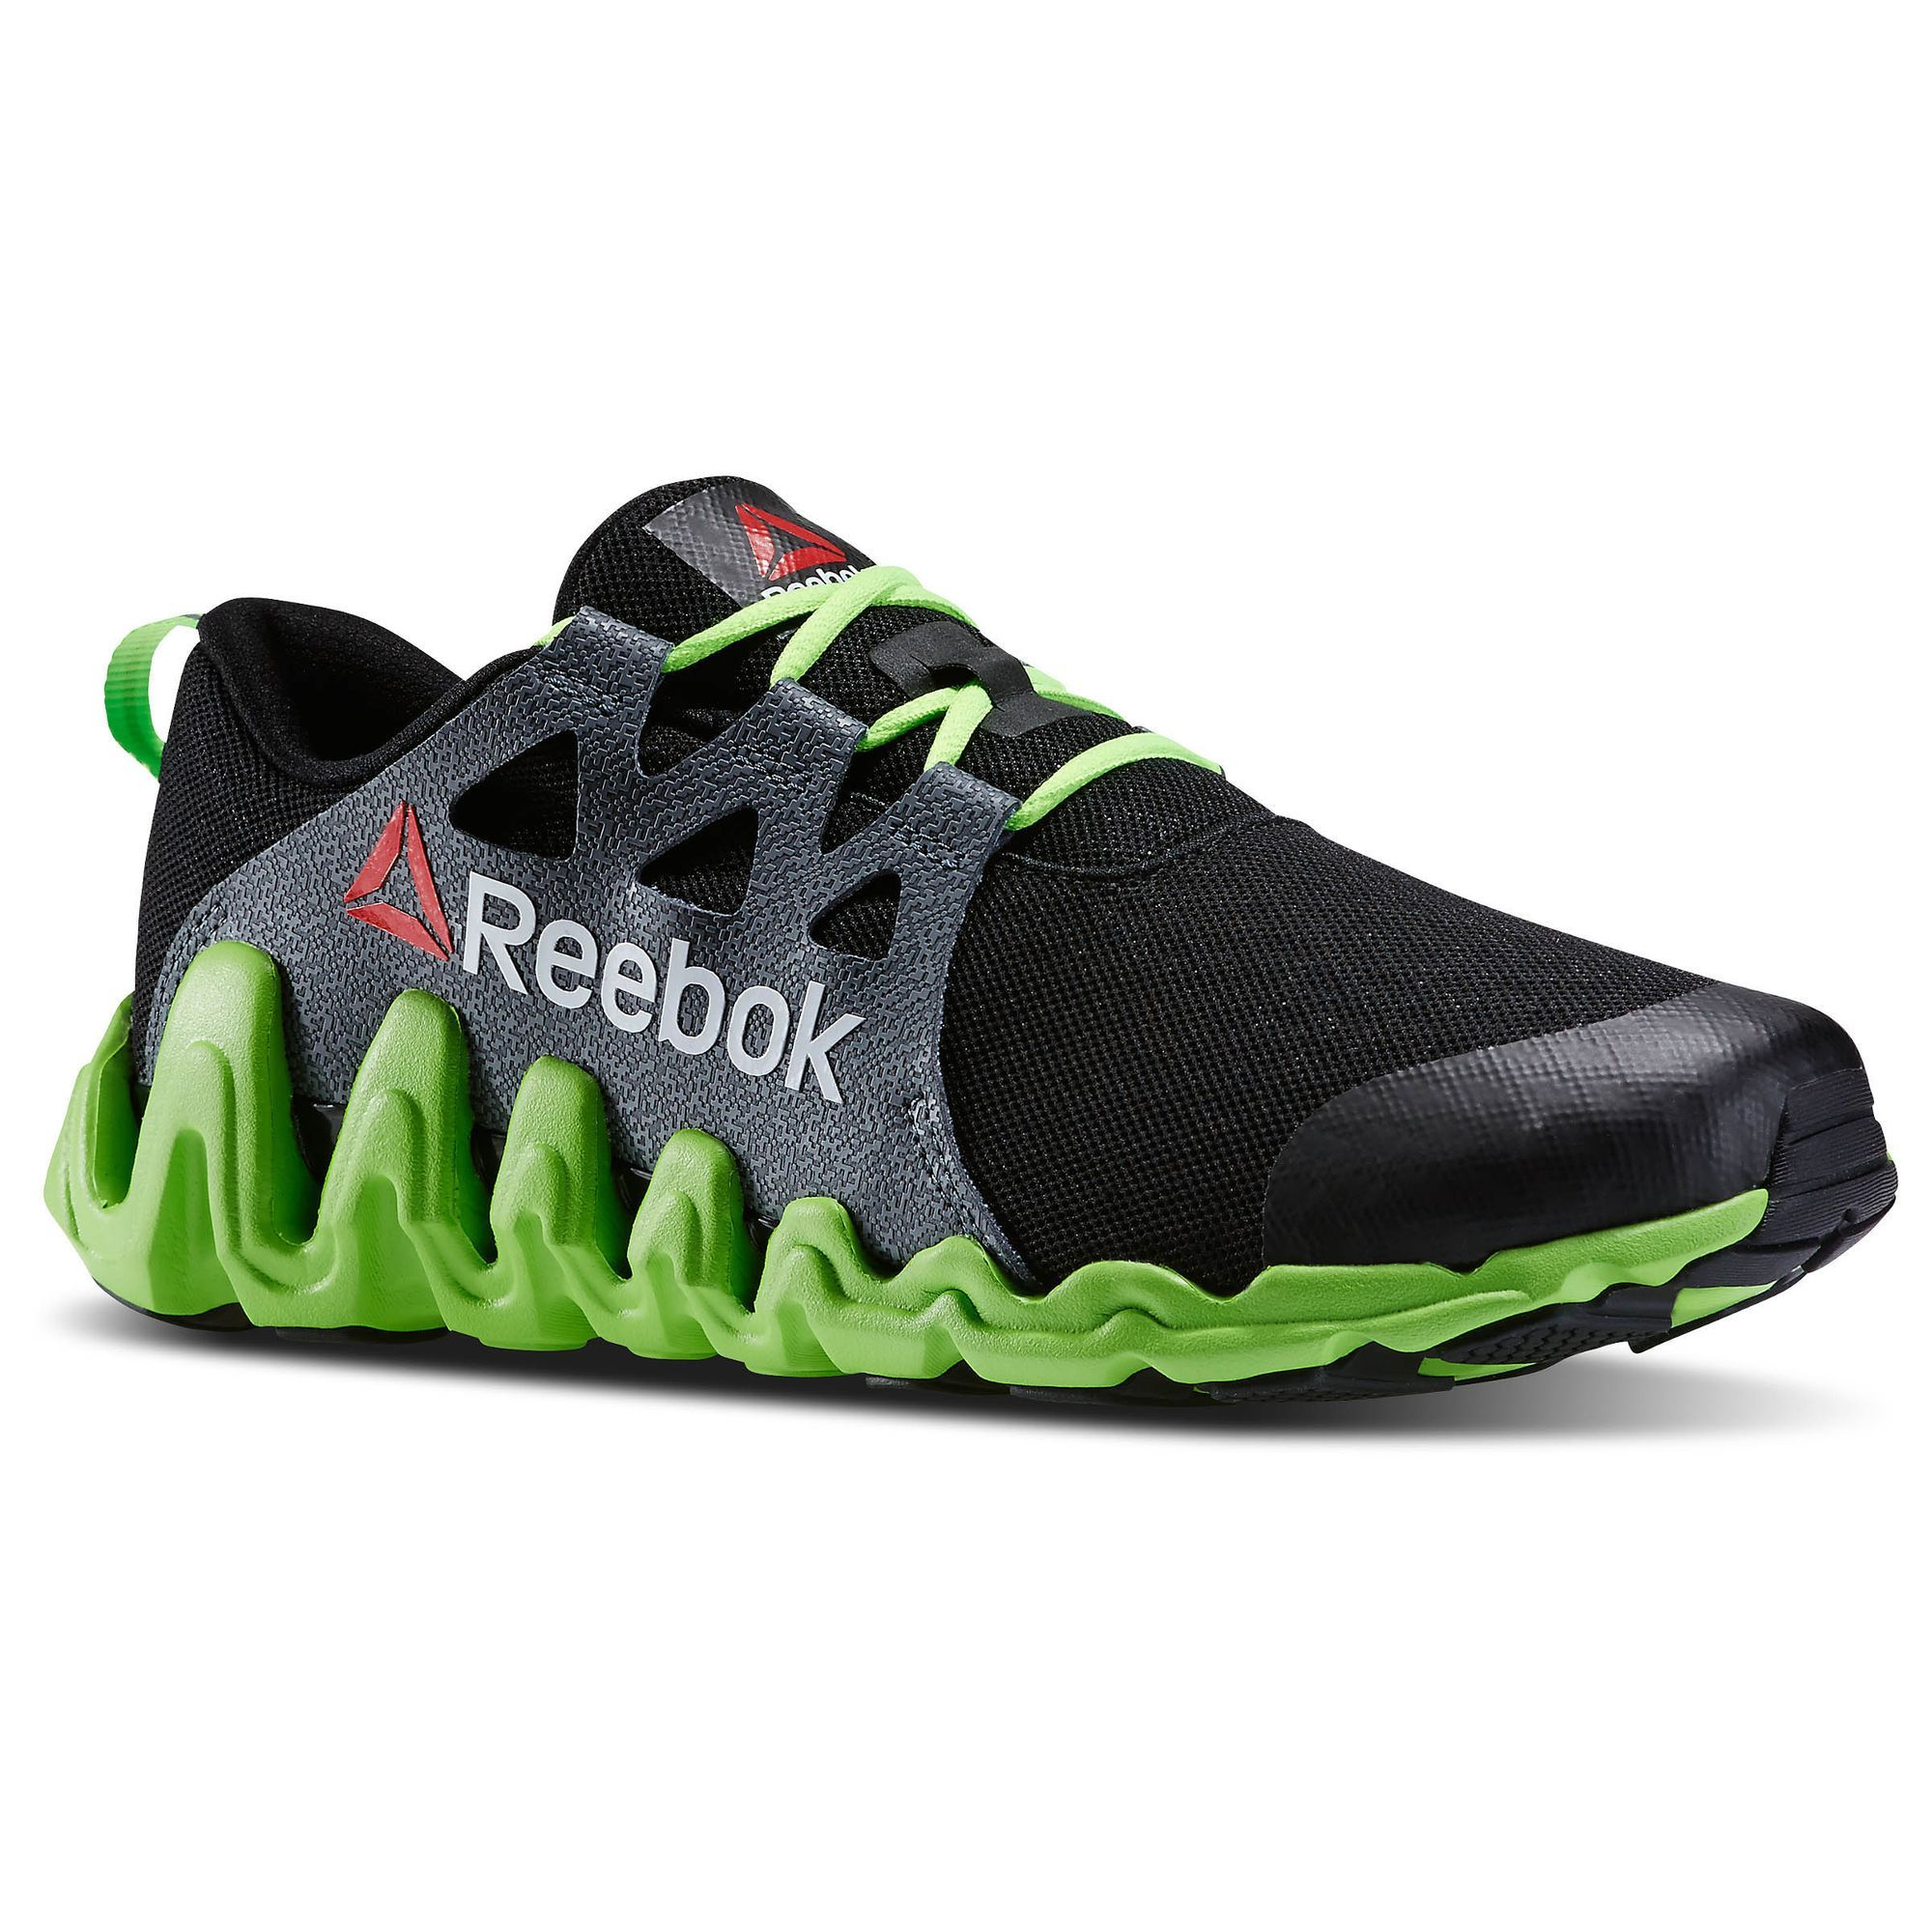 c2f77003339a Reebok - ZigTech Big   Fast. Color can be customized. Red black combo is  preferred.